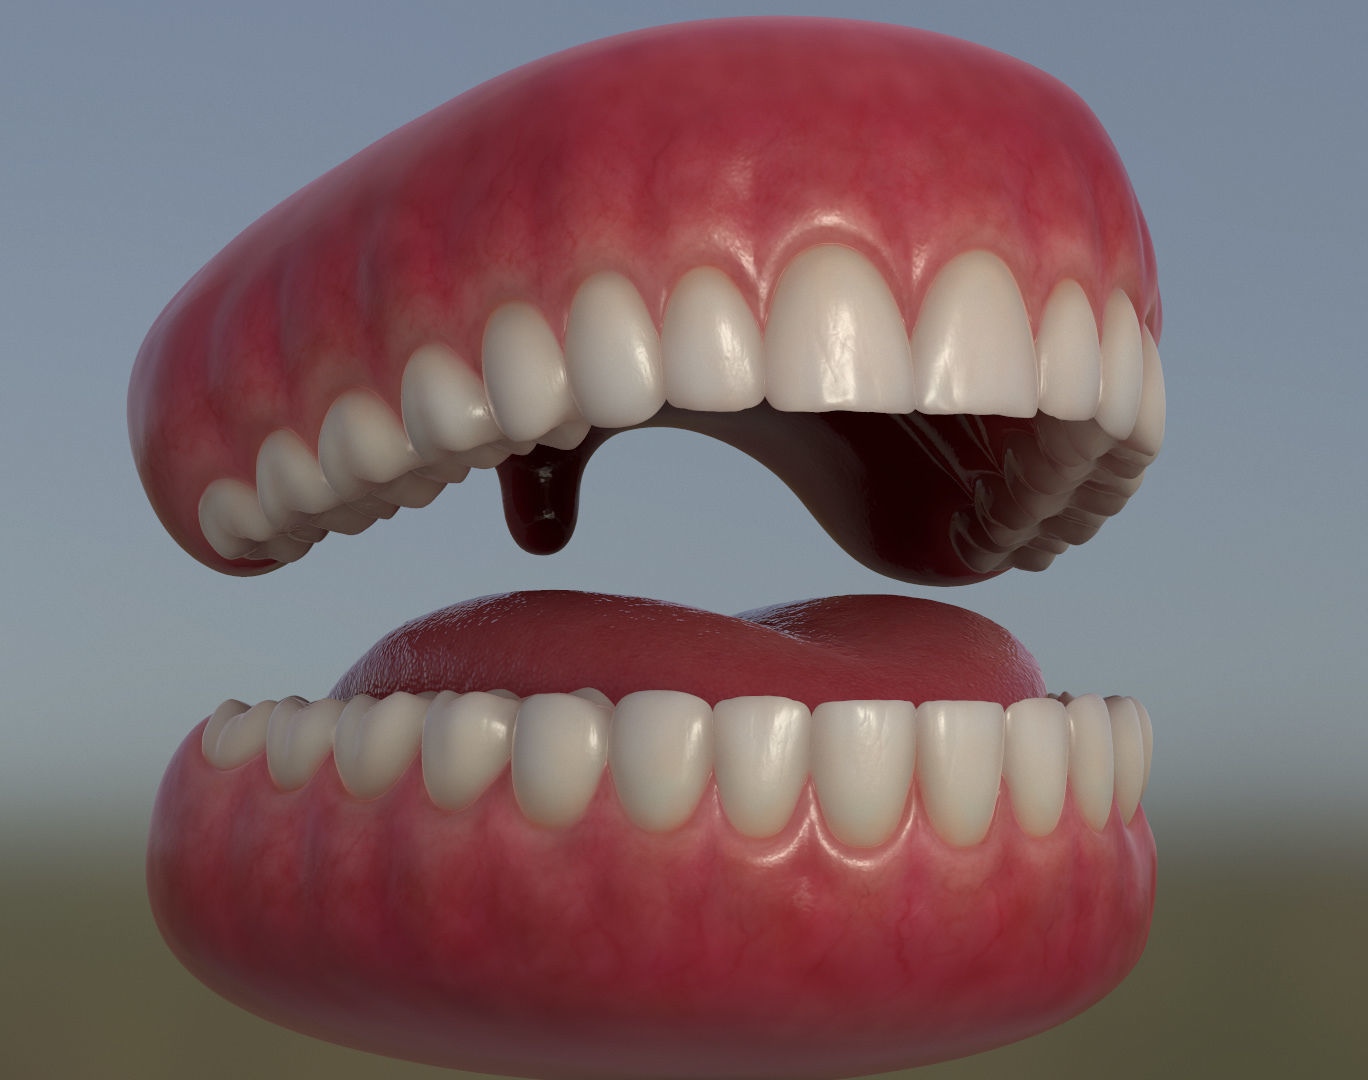 Teeth with gums and Tongue